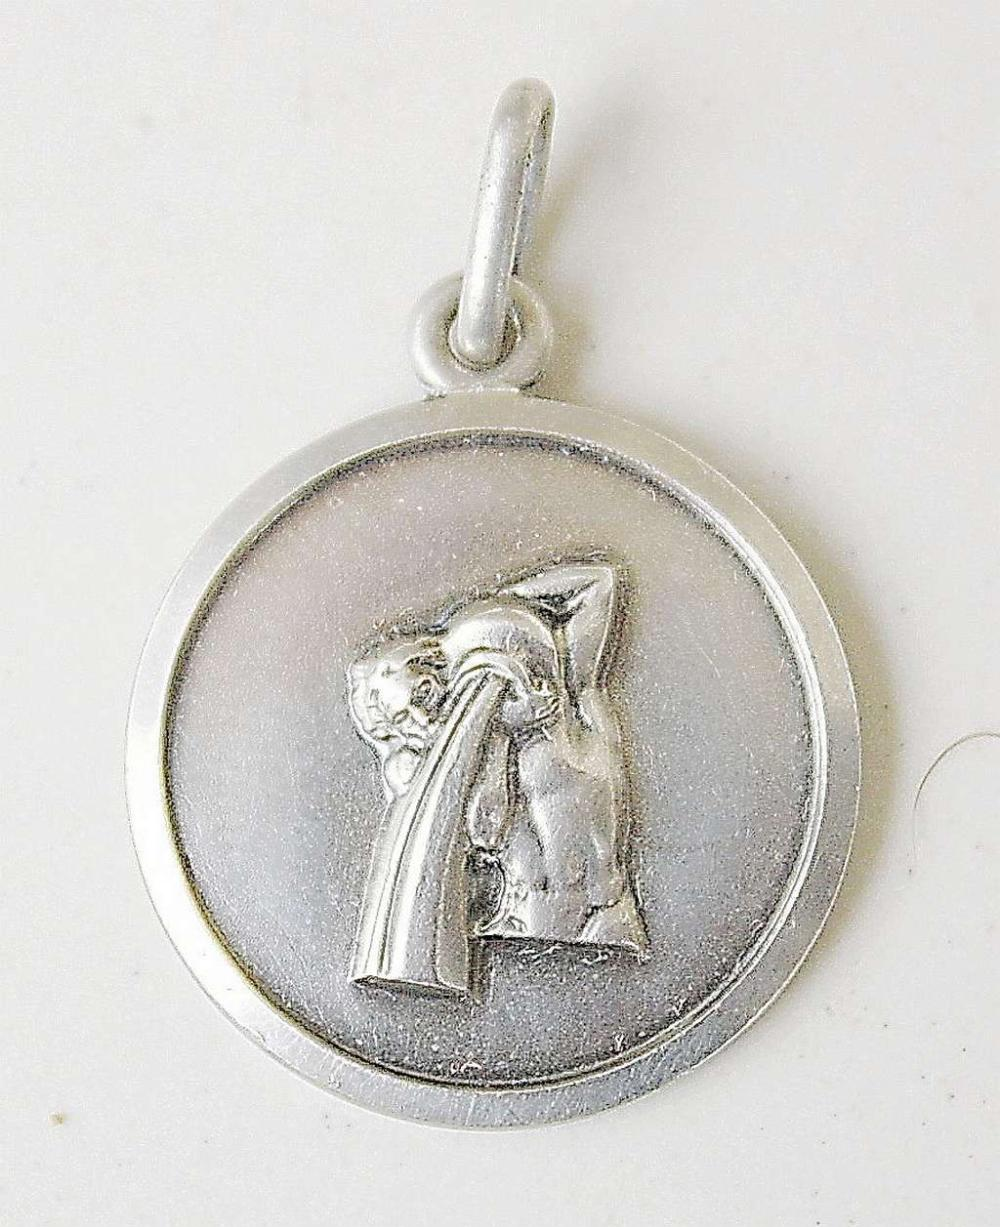 Aquarius / The Water-Bearer vintage silver sterling 925 pendant, signed